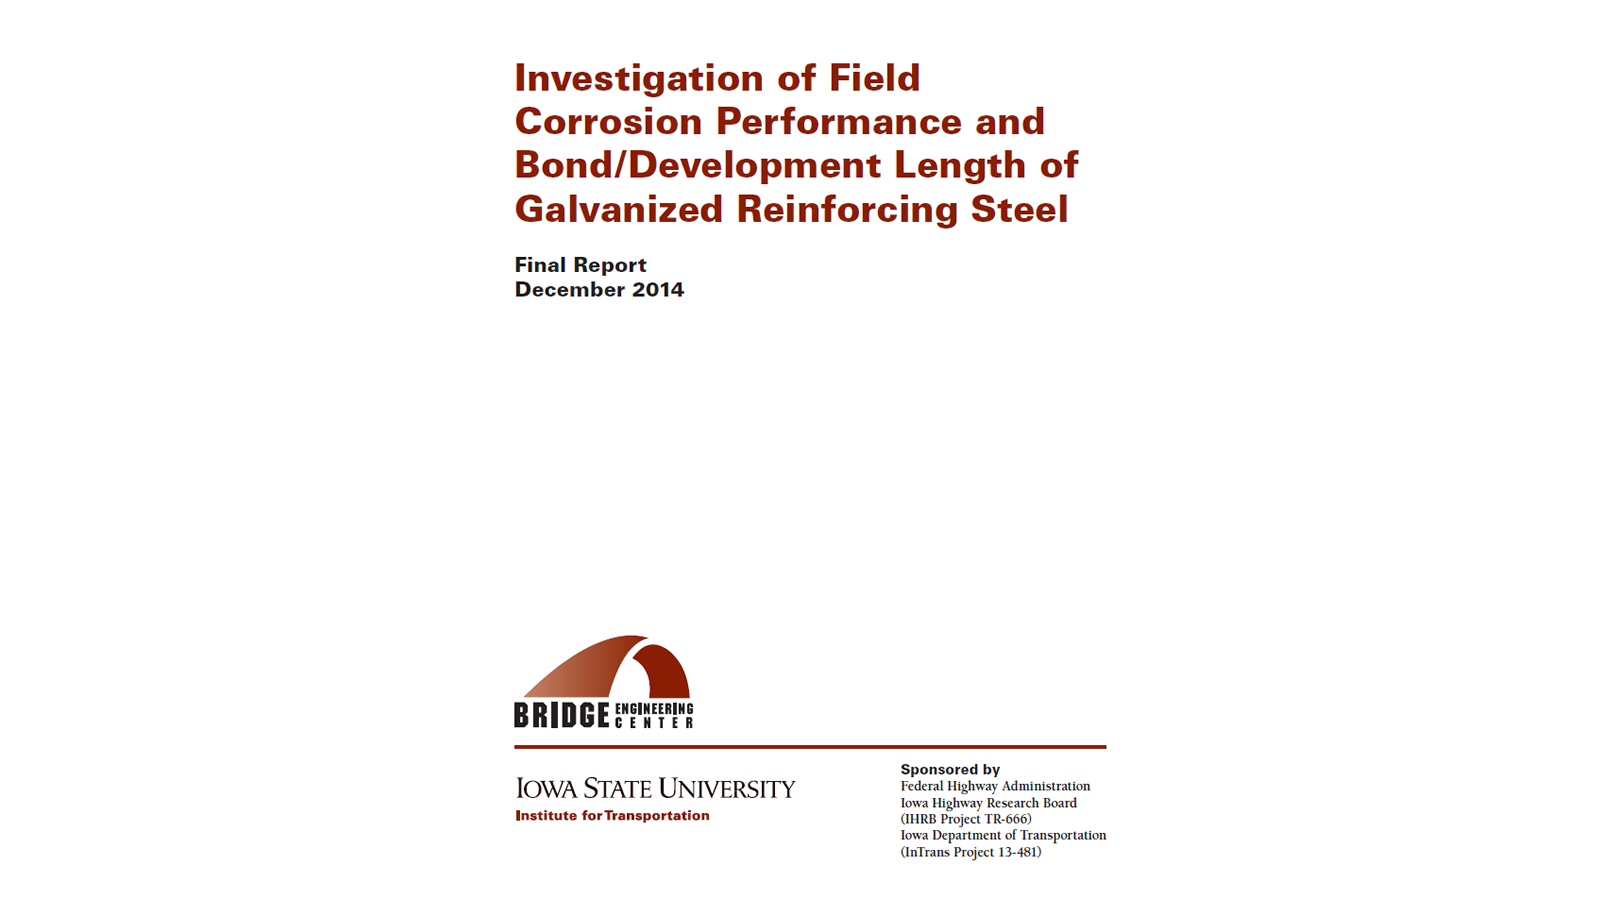 Investigation of Field Corrosion Performance and Bond/Development Length of Galvanized Reinforcing Steel